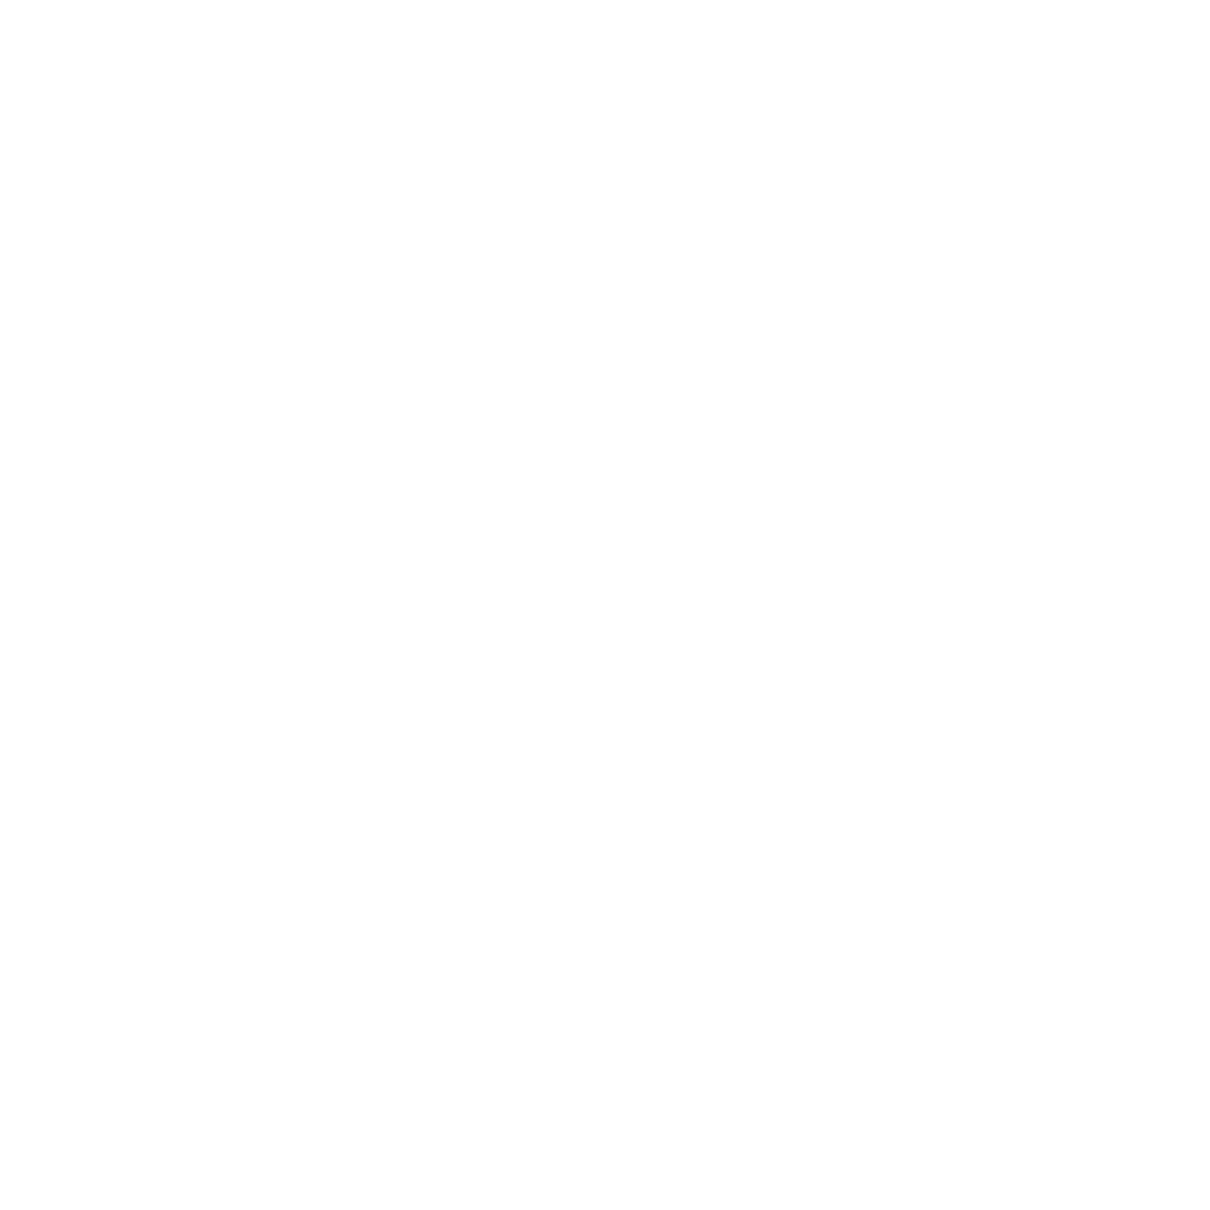 Intrepid Visuals: Nebraska Wedding Photographer